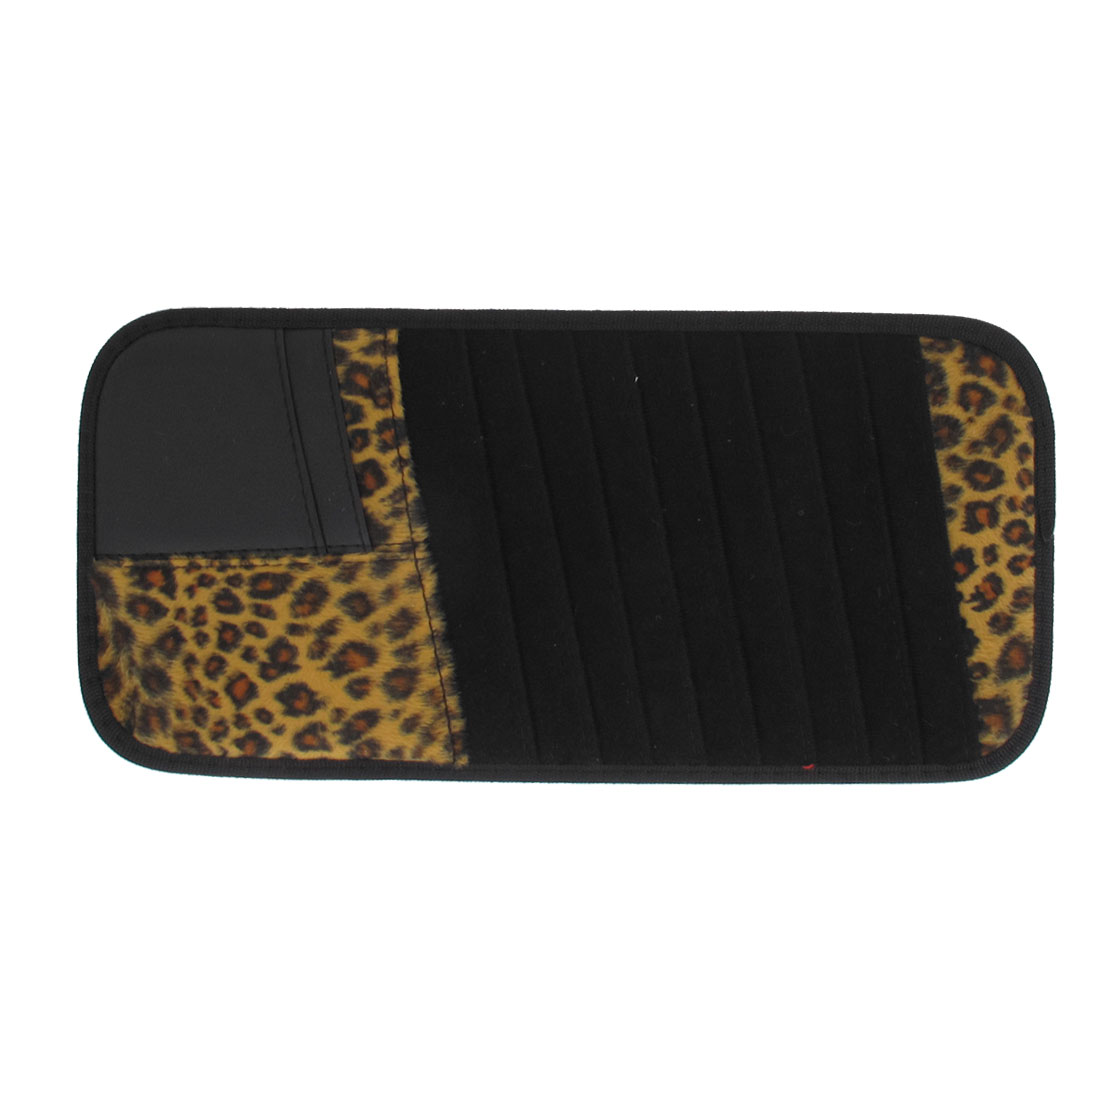 Black Brown Fleece Leopard Pattern Rectangle 12pcs VCD DV CD Discs Holder Bag for Car